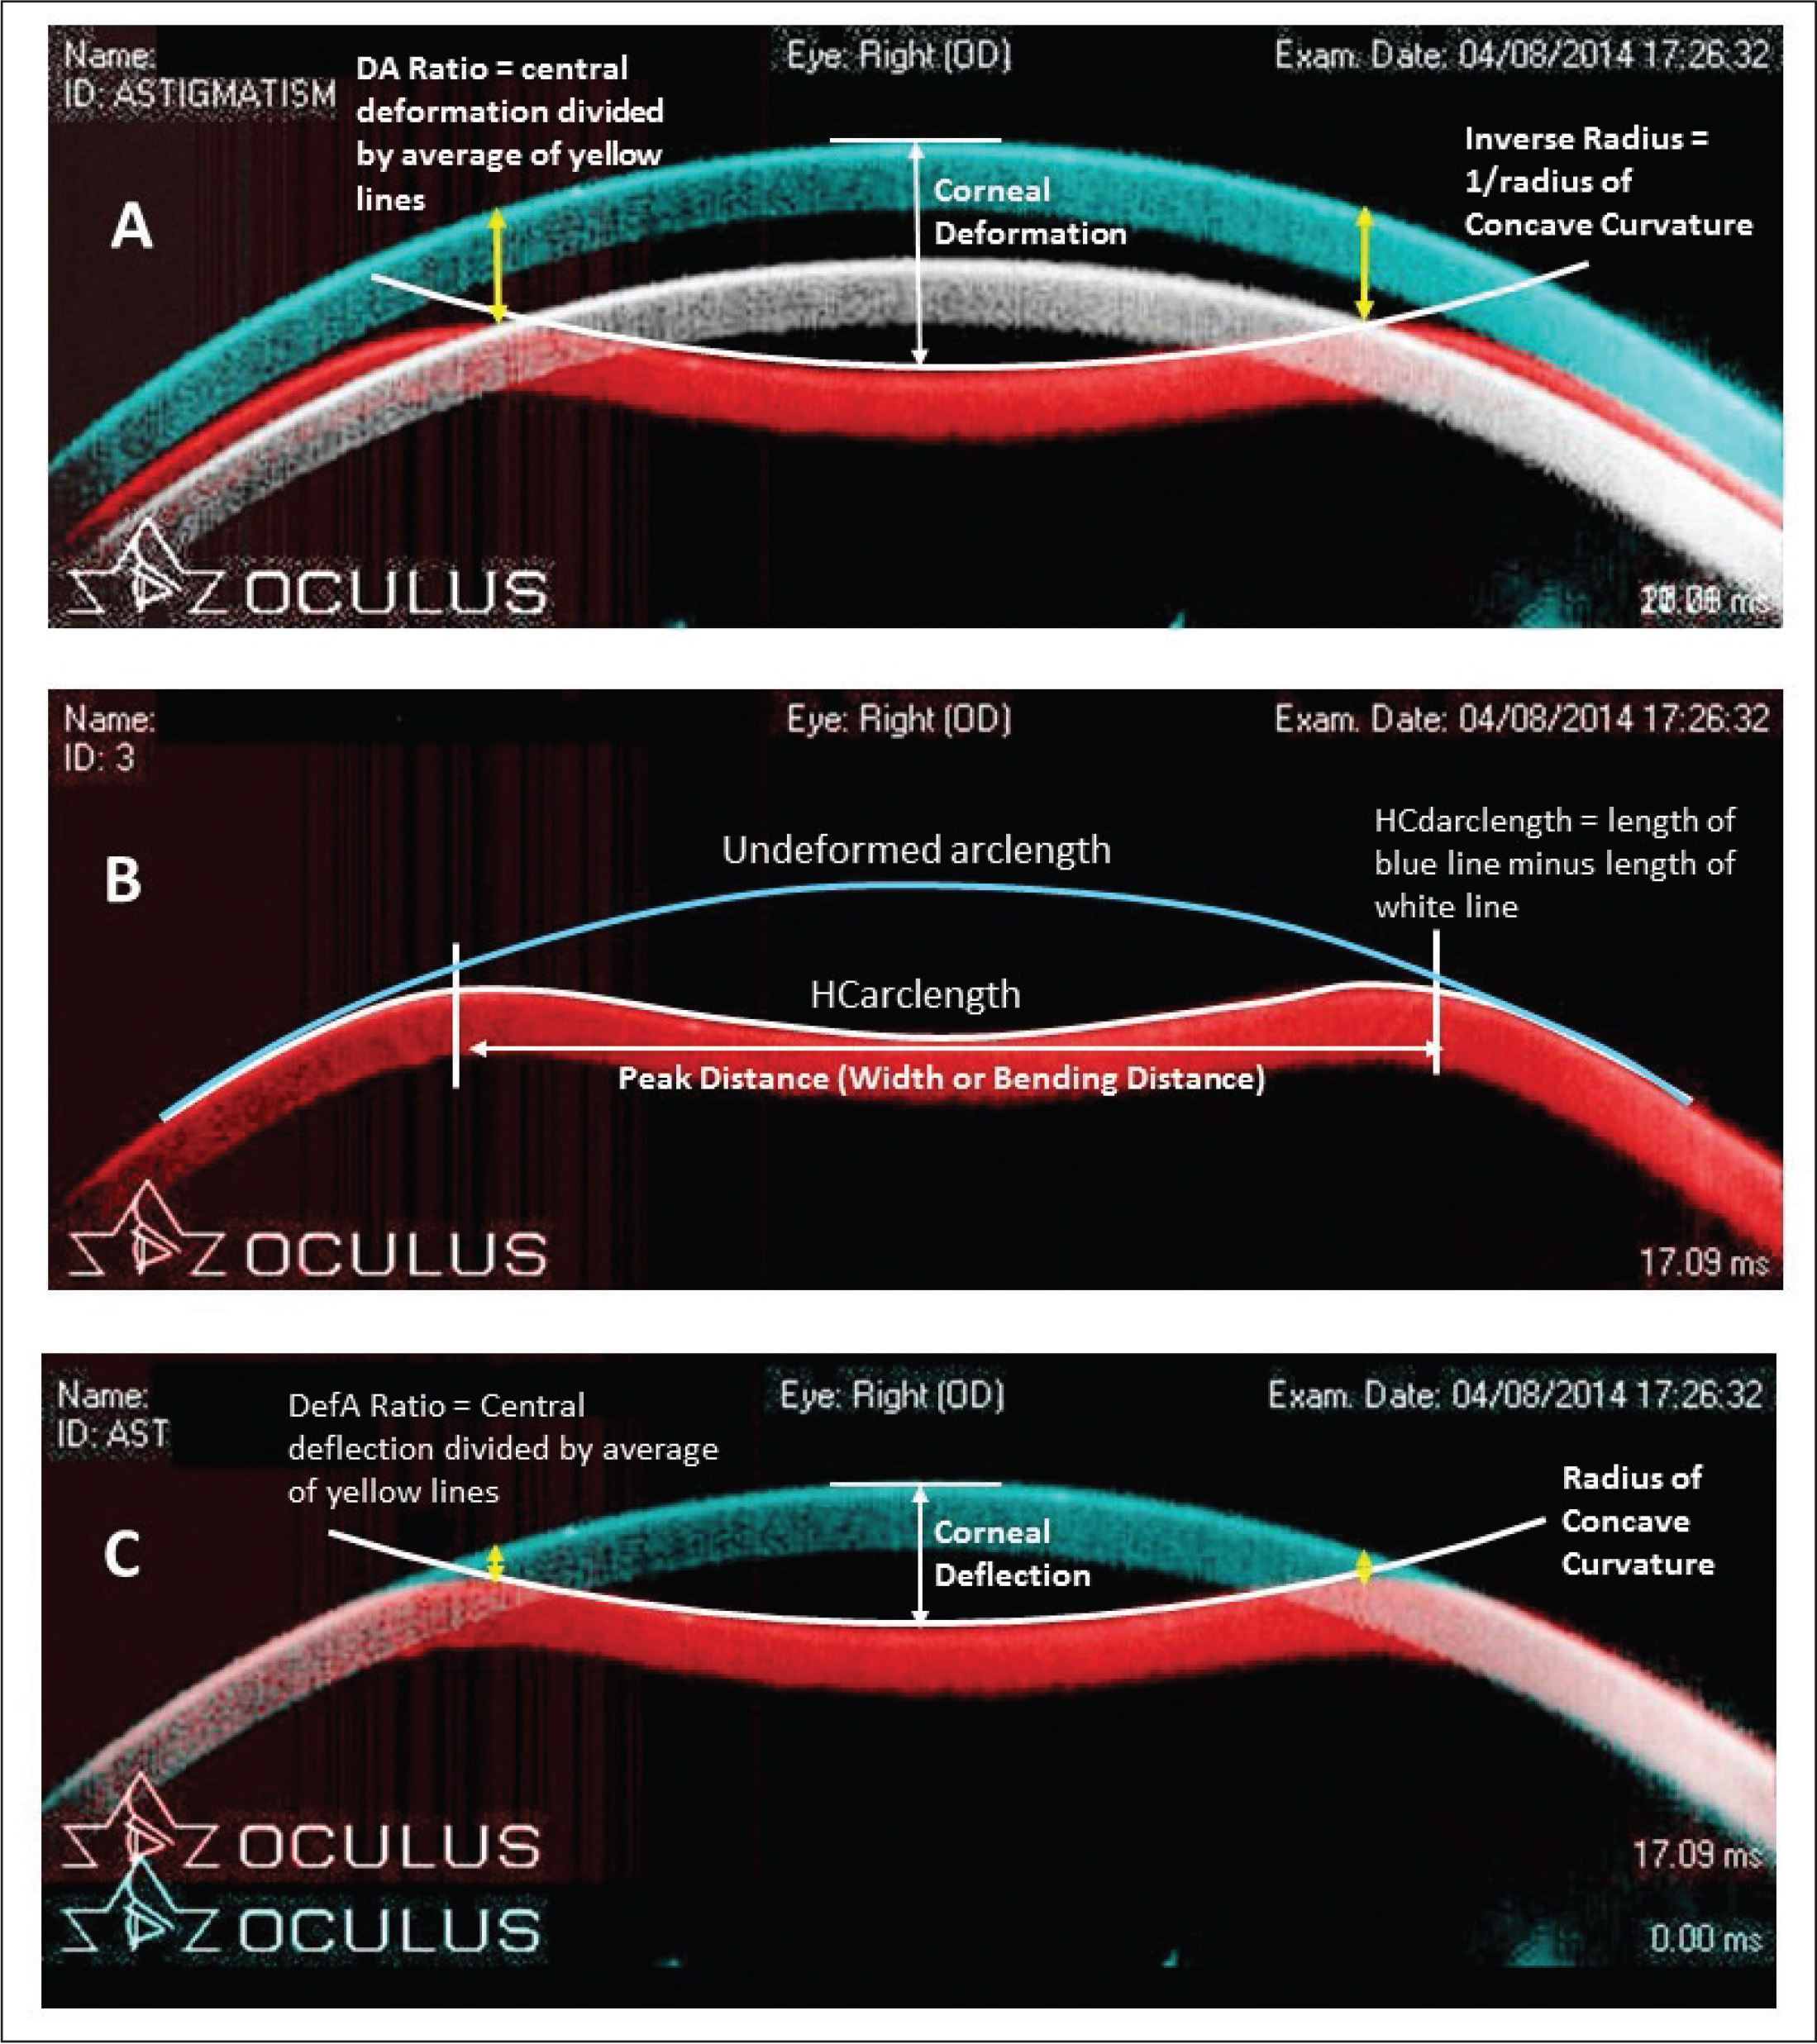 Superimposed frames extracted from a single examination, showing (A) cornea in the predeformation phase (pseudocolored blue), at maximal corneal deflection (pseudocolored red), and at maximal whole eye movement (pseudocolored white); (B) cornea at maximum deflection (highest concavity) with illustration of displacement from predeformation anterior surface arc (blue line); and (C) correction for whole eye motion by aligning all corneal positions to that at predeformation. Note the example shown is from the cornea with the greatest magnitude of whole eye motion in the entire dataset for illustration of multiple phases, and therefore represents an extreme value. Note also that maximal whole eye motion occurred after corneal deflection had recovered completely.